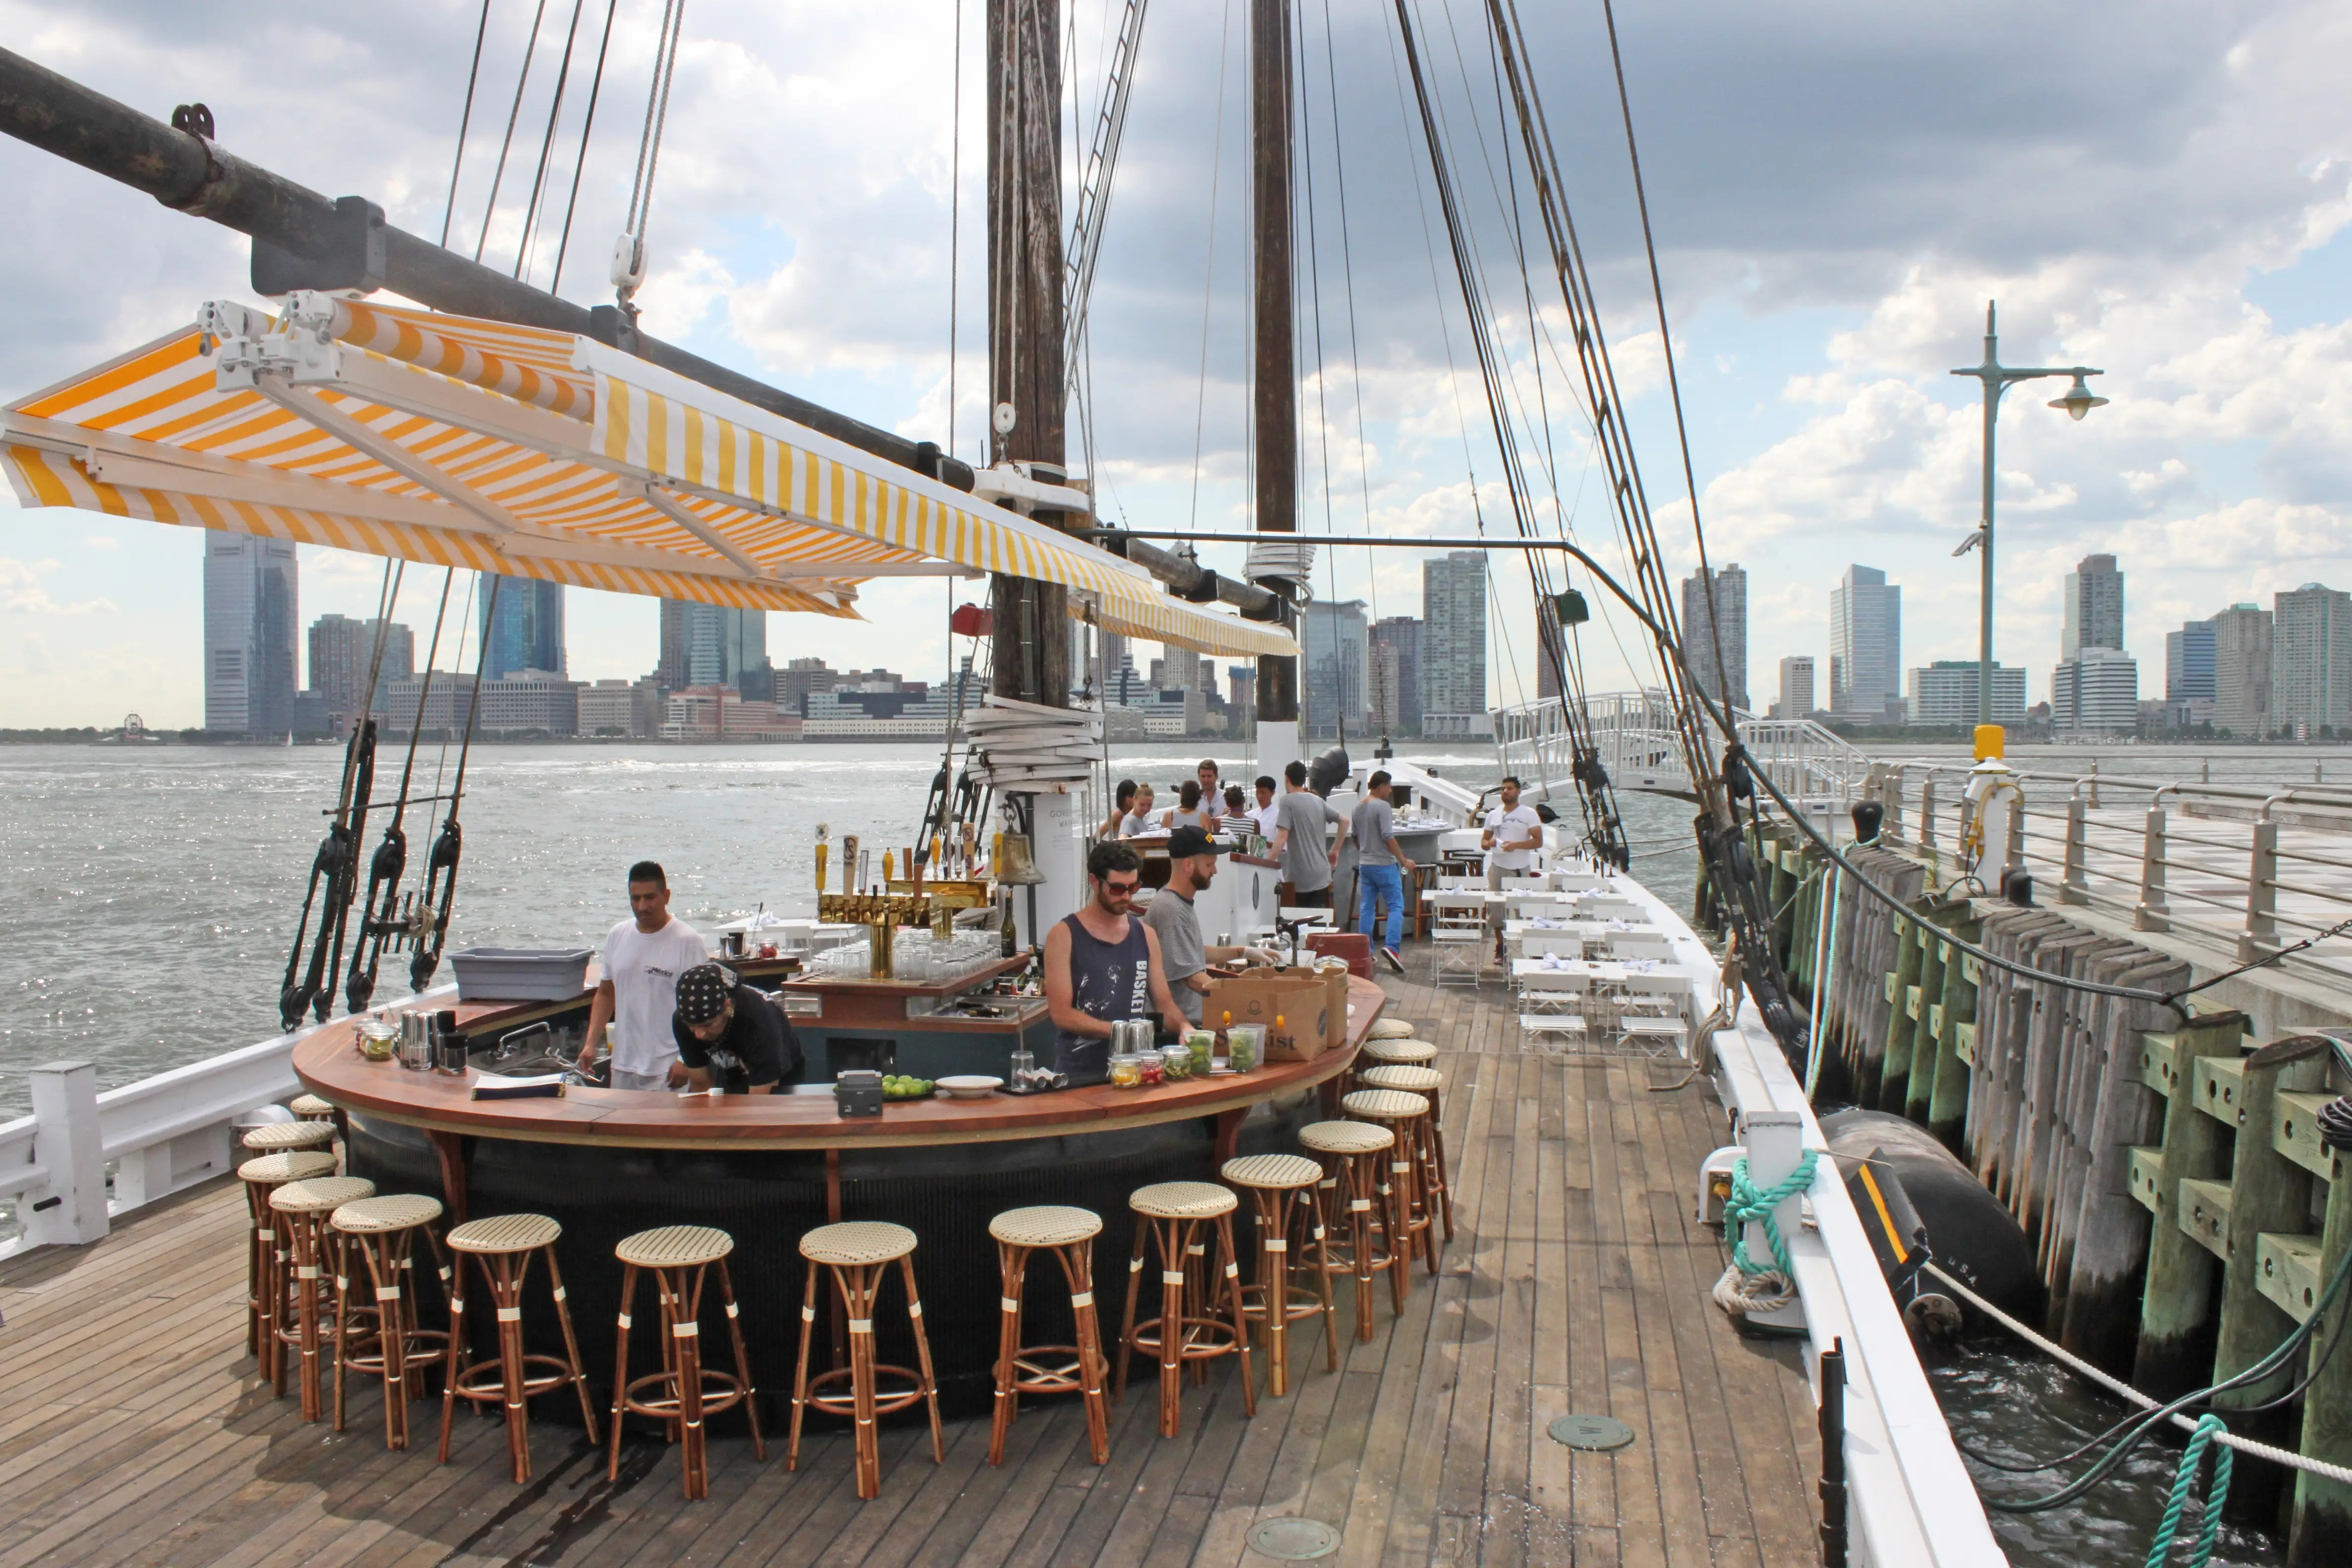 Grand Banks is anchored in the Hudson River, at the end of Pier 25 in Tribeca. The ship is 142 feet long, making it the largest wooden vessel in New York City and one of the largest on the East Coast.